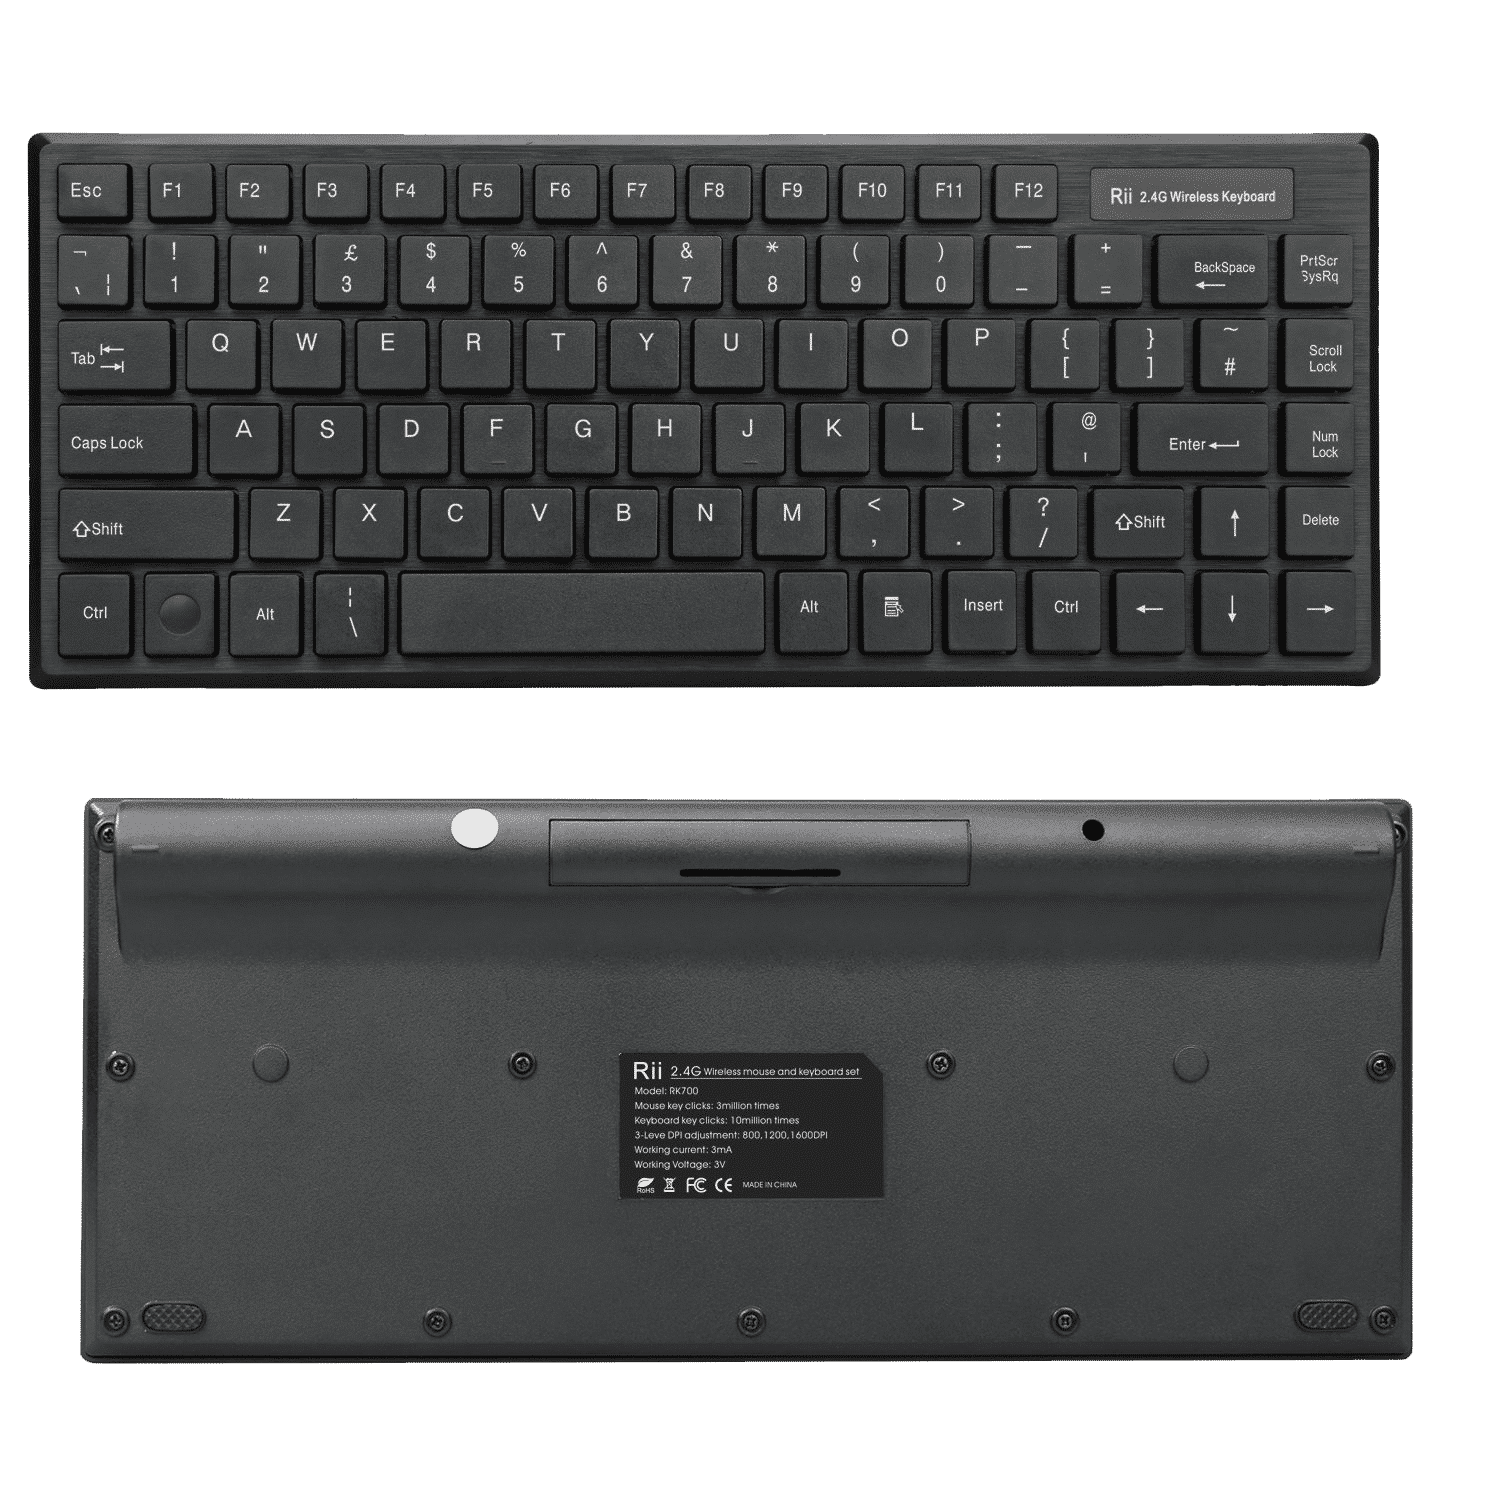 Rii RK700 Wireless Keyboard front and back